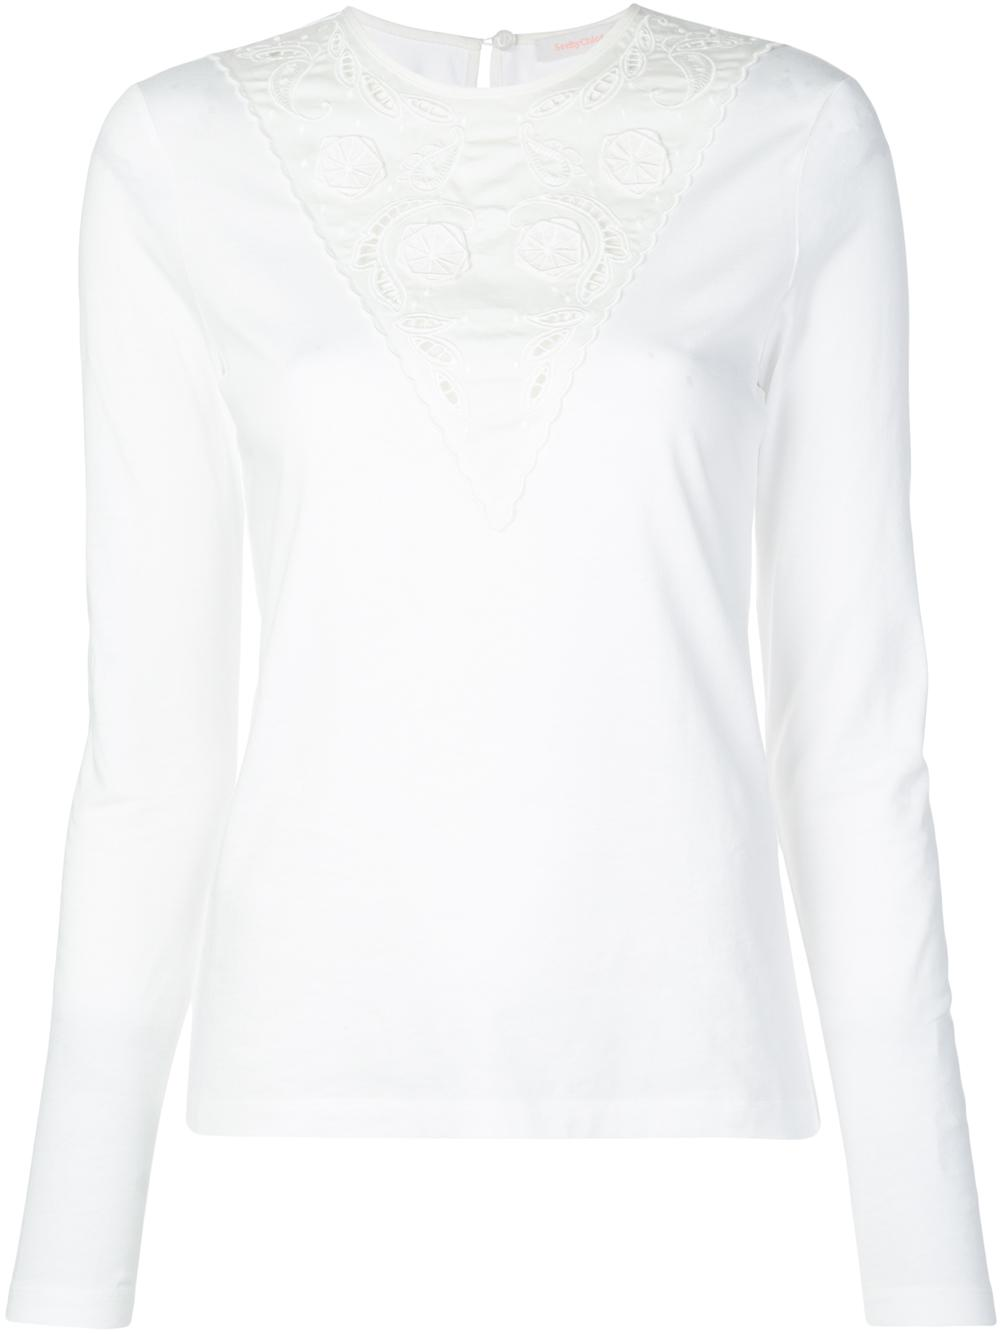 Long Sleeve Knit Top With Neckline Embroider